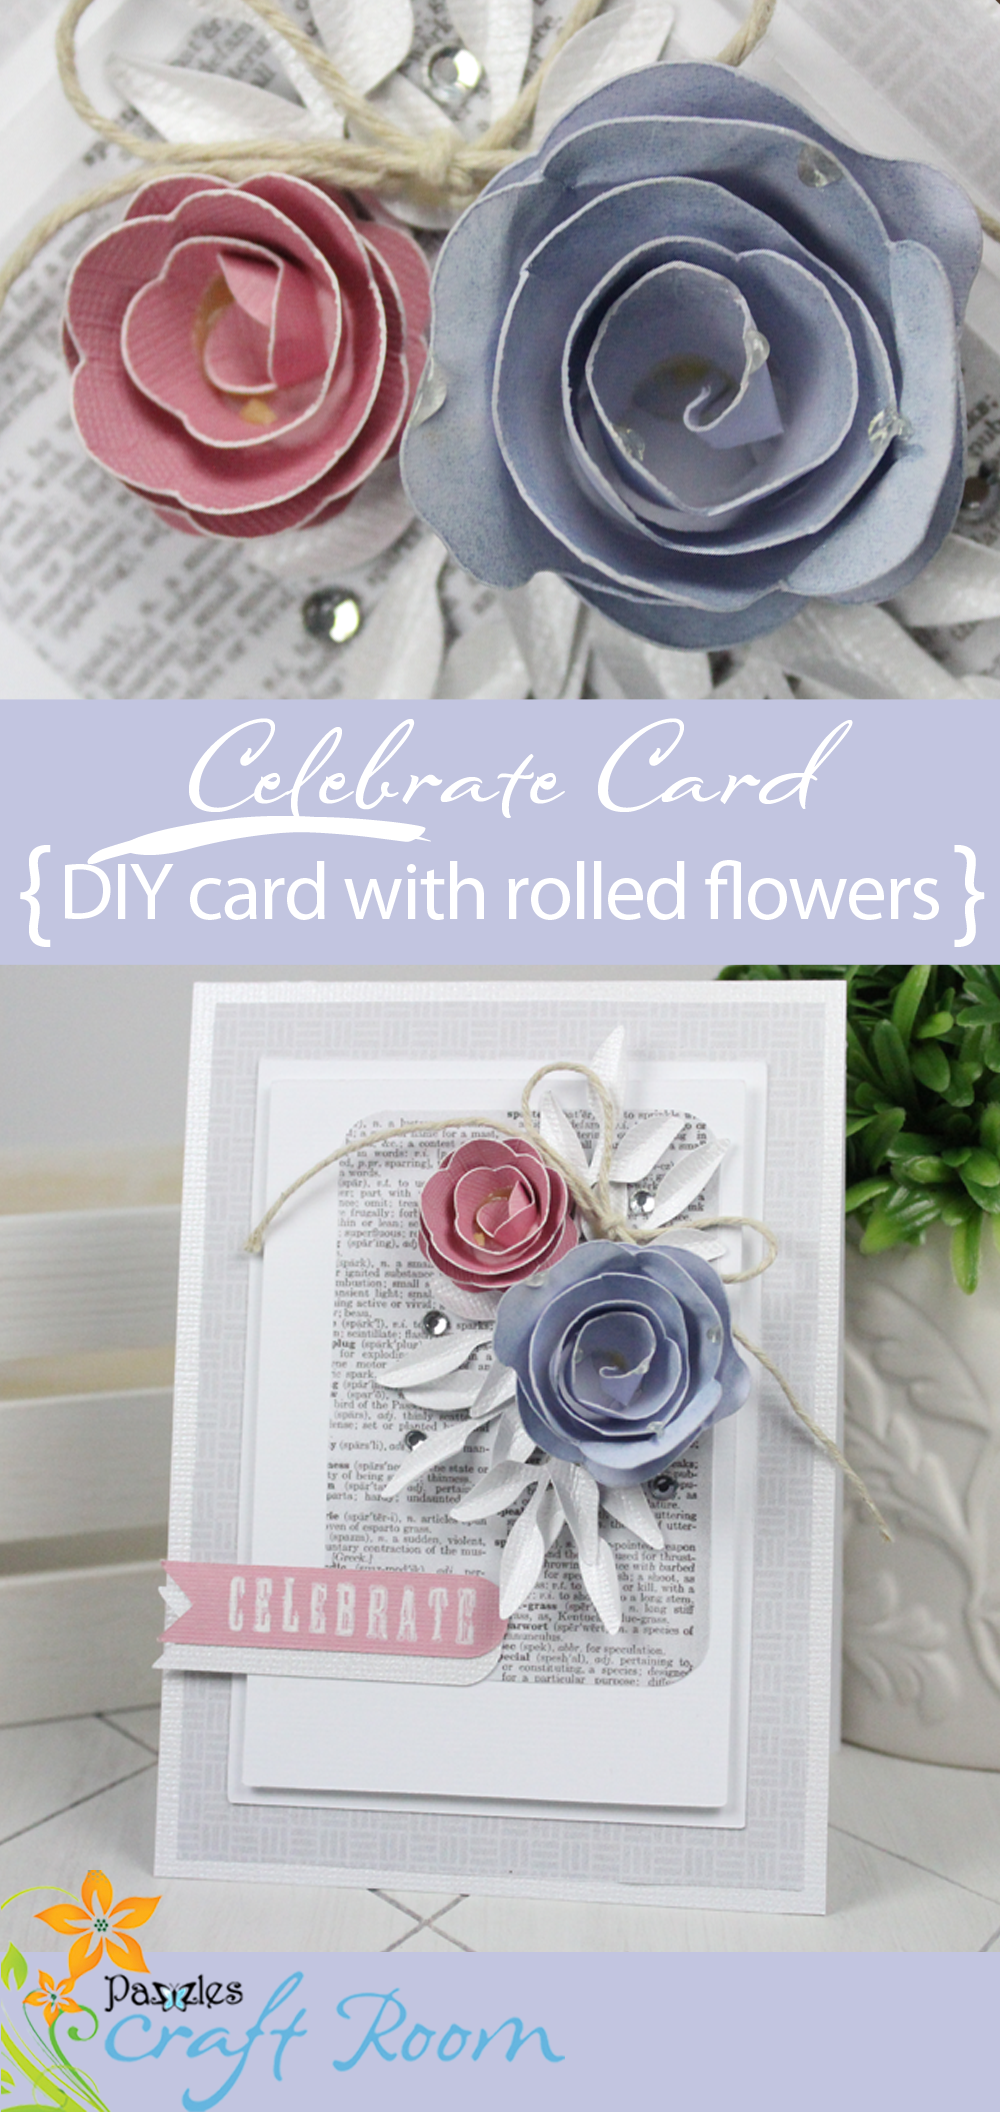 Celebrate Card Spring DIY Projects Pinterest